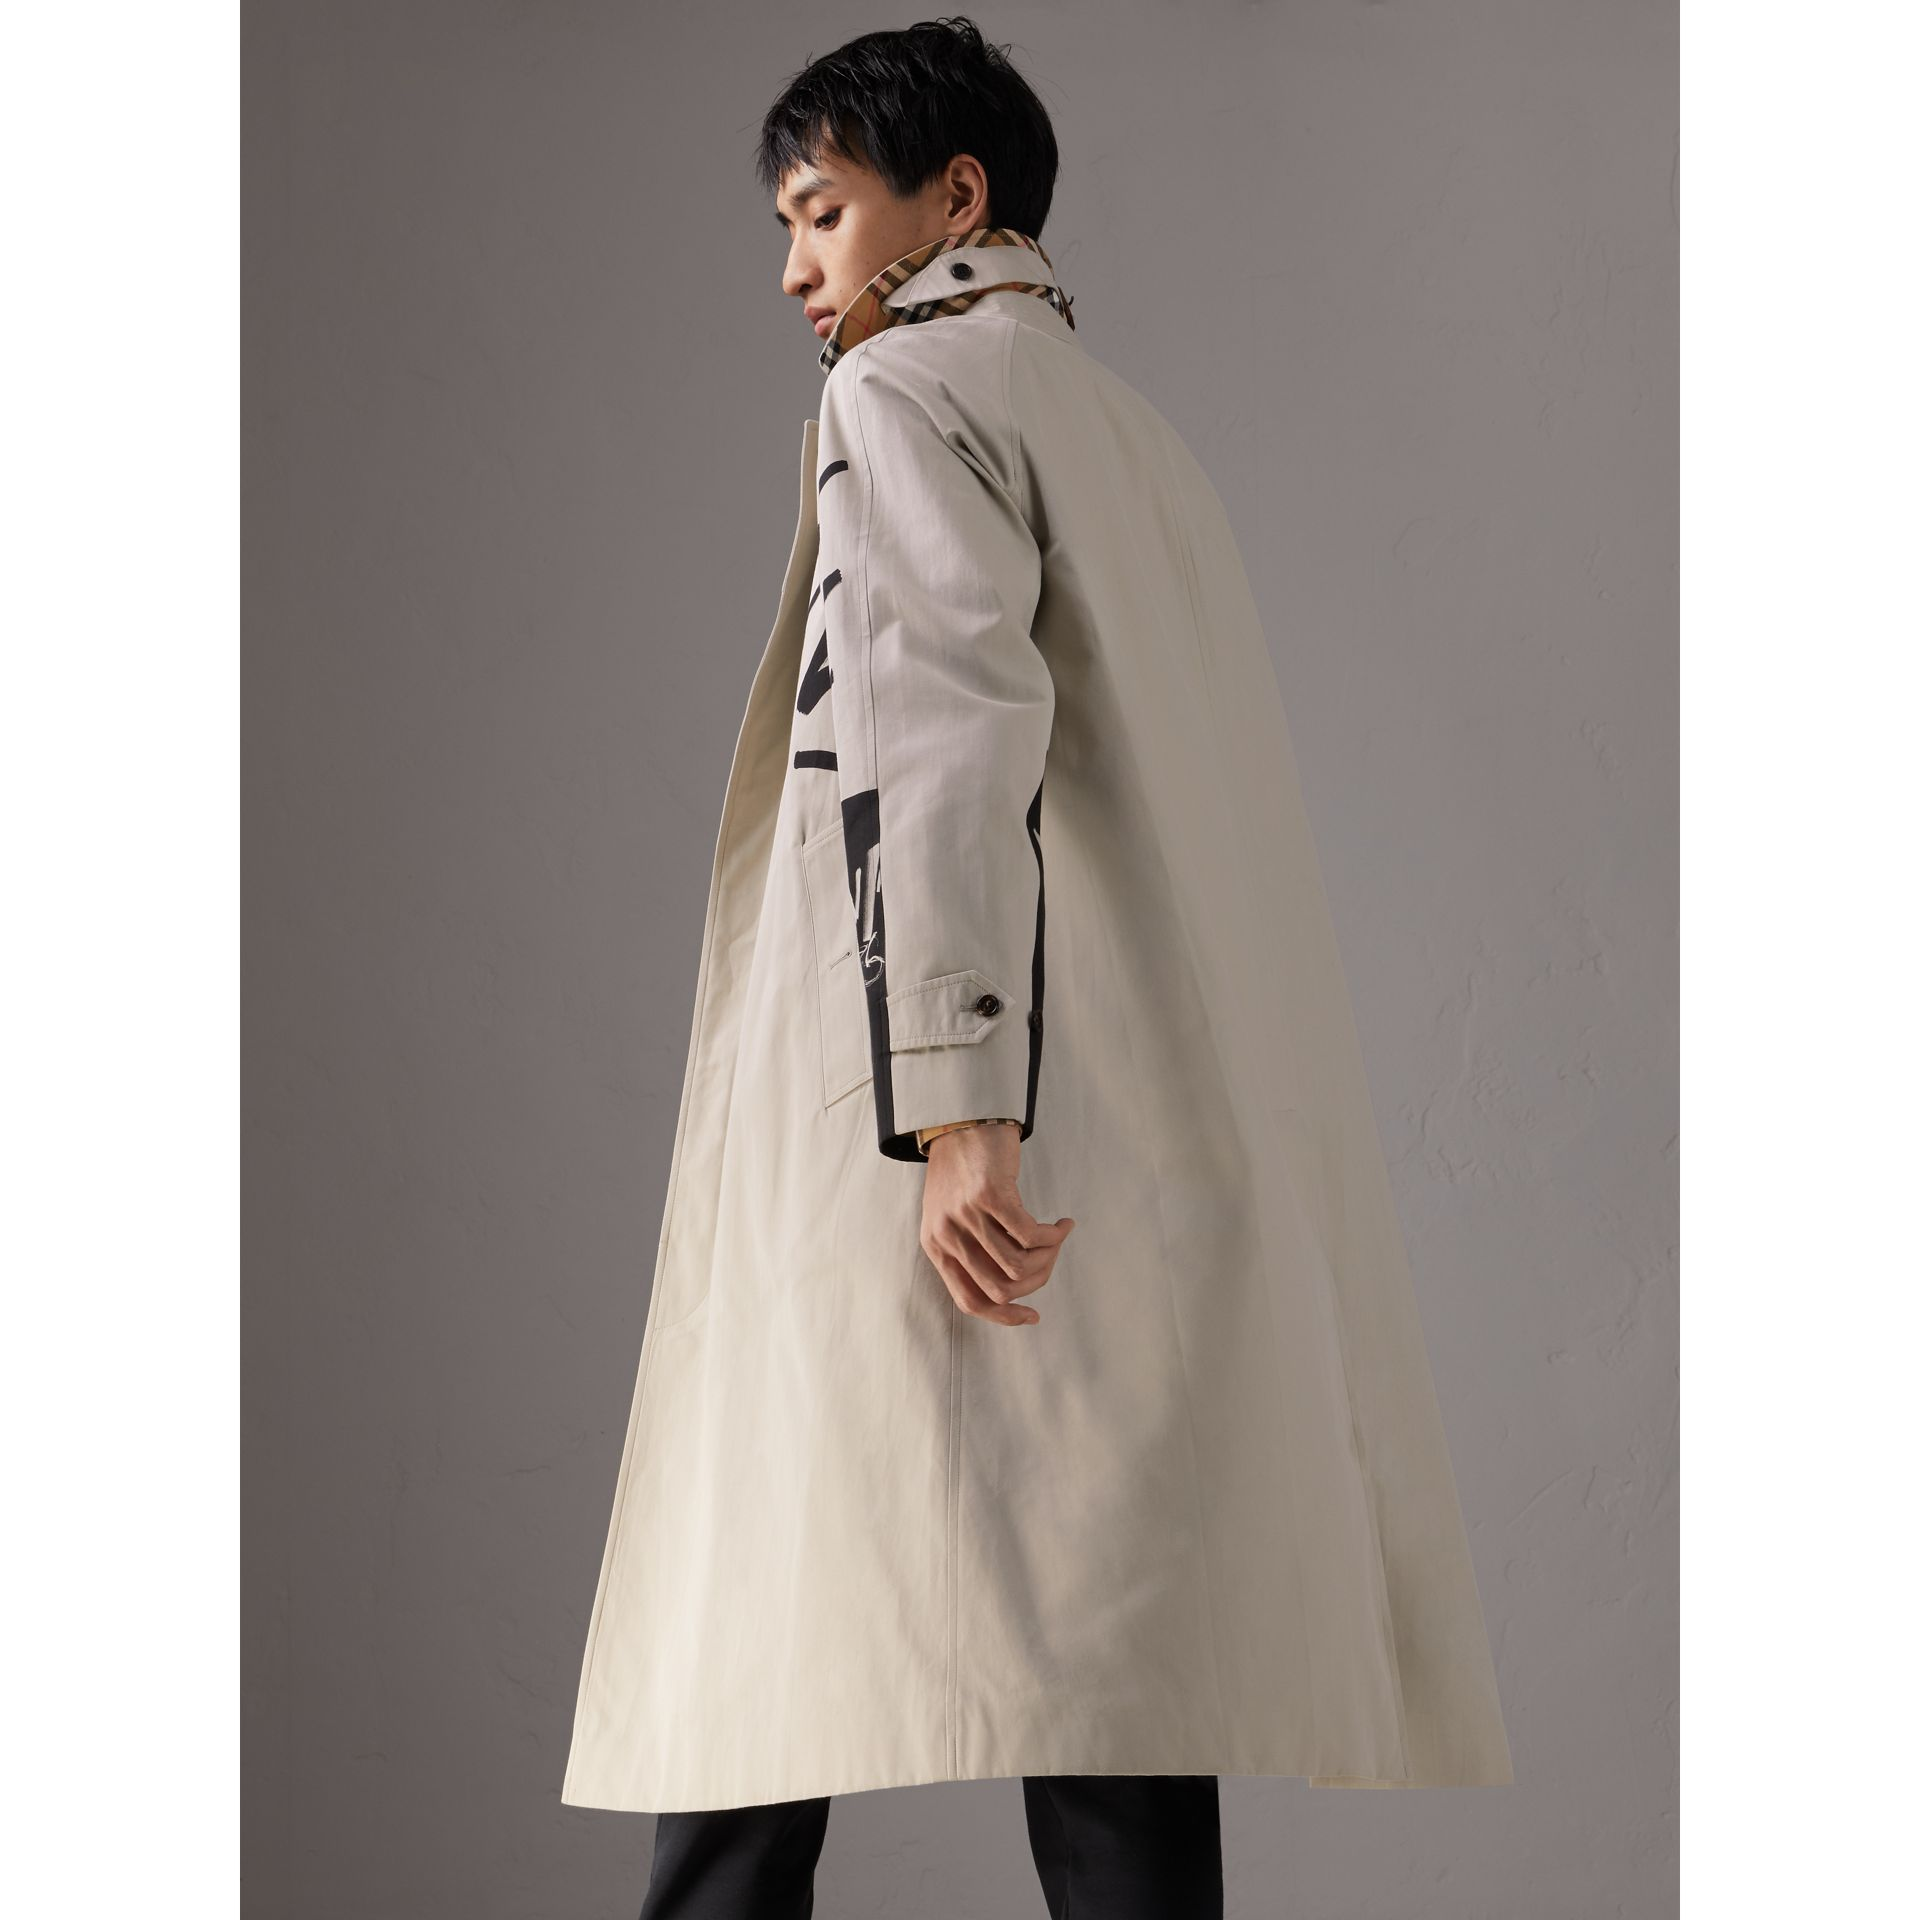 Burberry x Kris Wu Gabardine Car Coat in Stone - Men | Burberry Singapore - gallery image 2